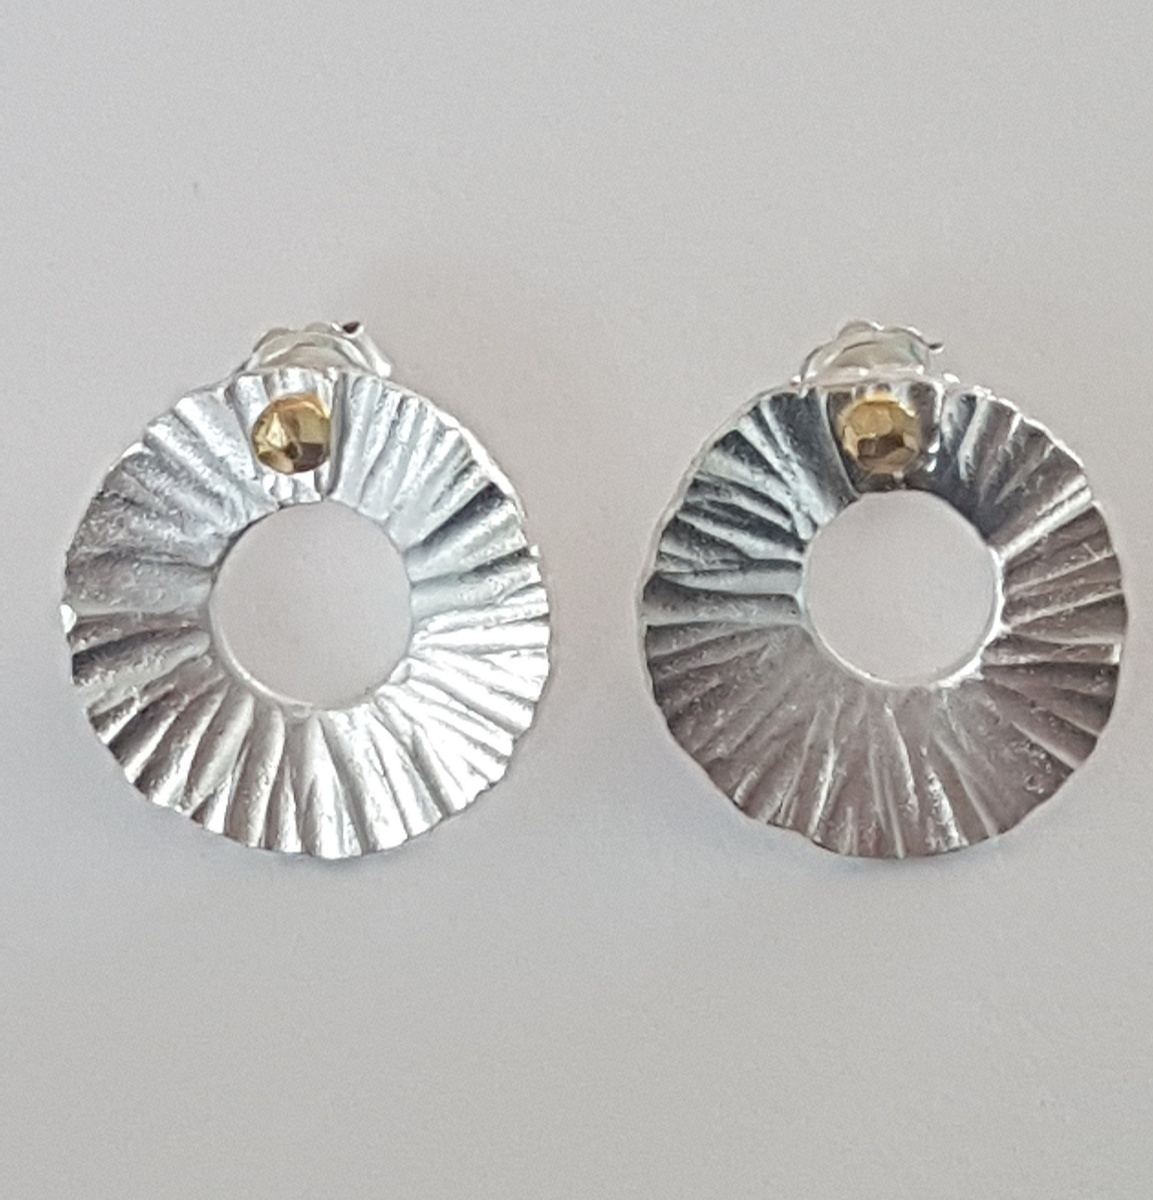 Silver Peel earrings